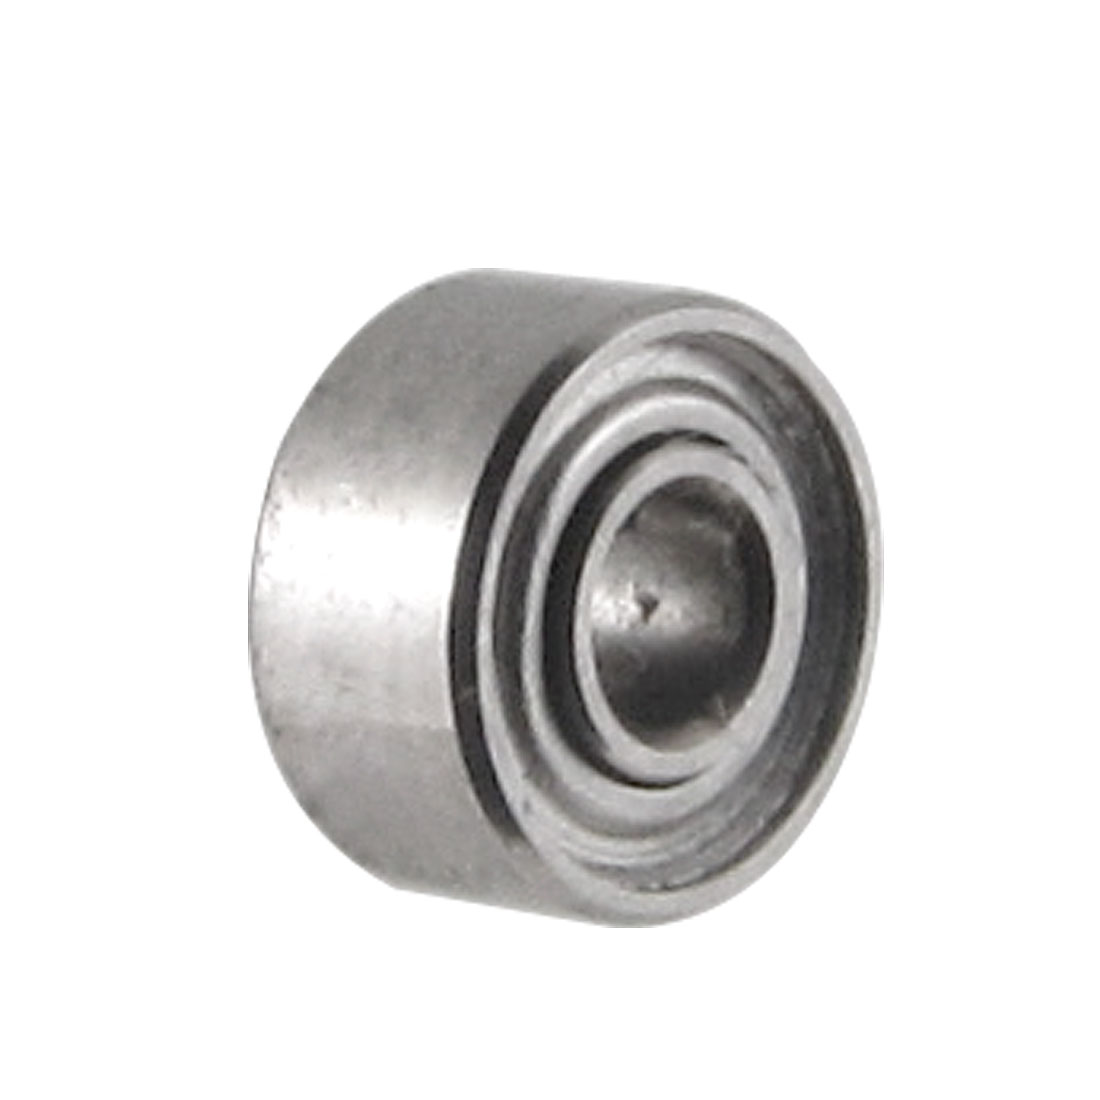 Silver Tone Metal Sealed Deep Groove Radial Ball Bearing 1.5mm x 4mm x 2mm